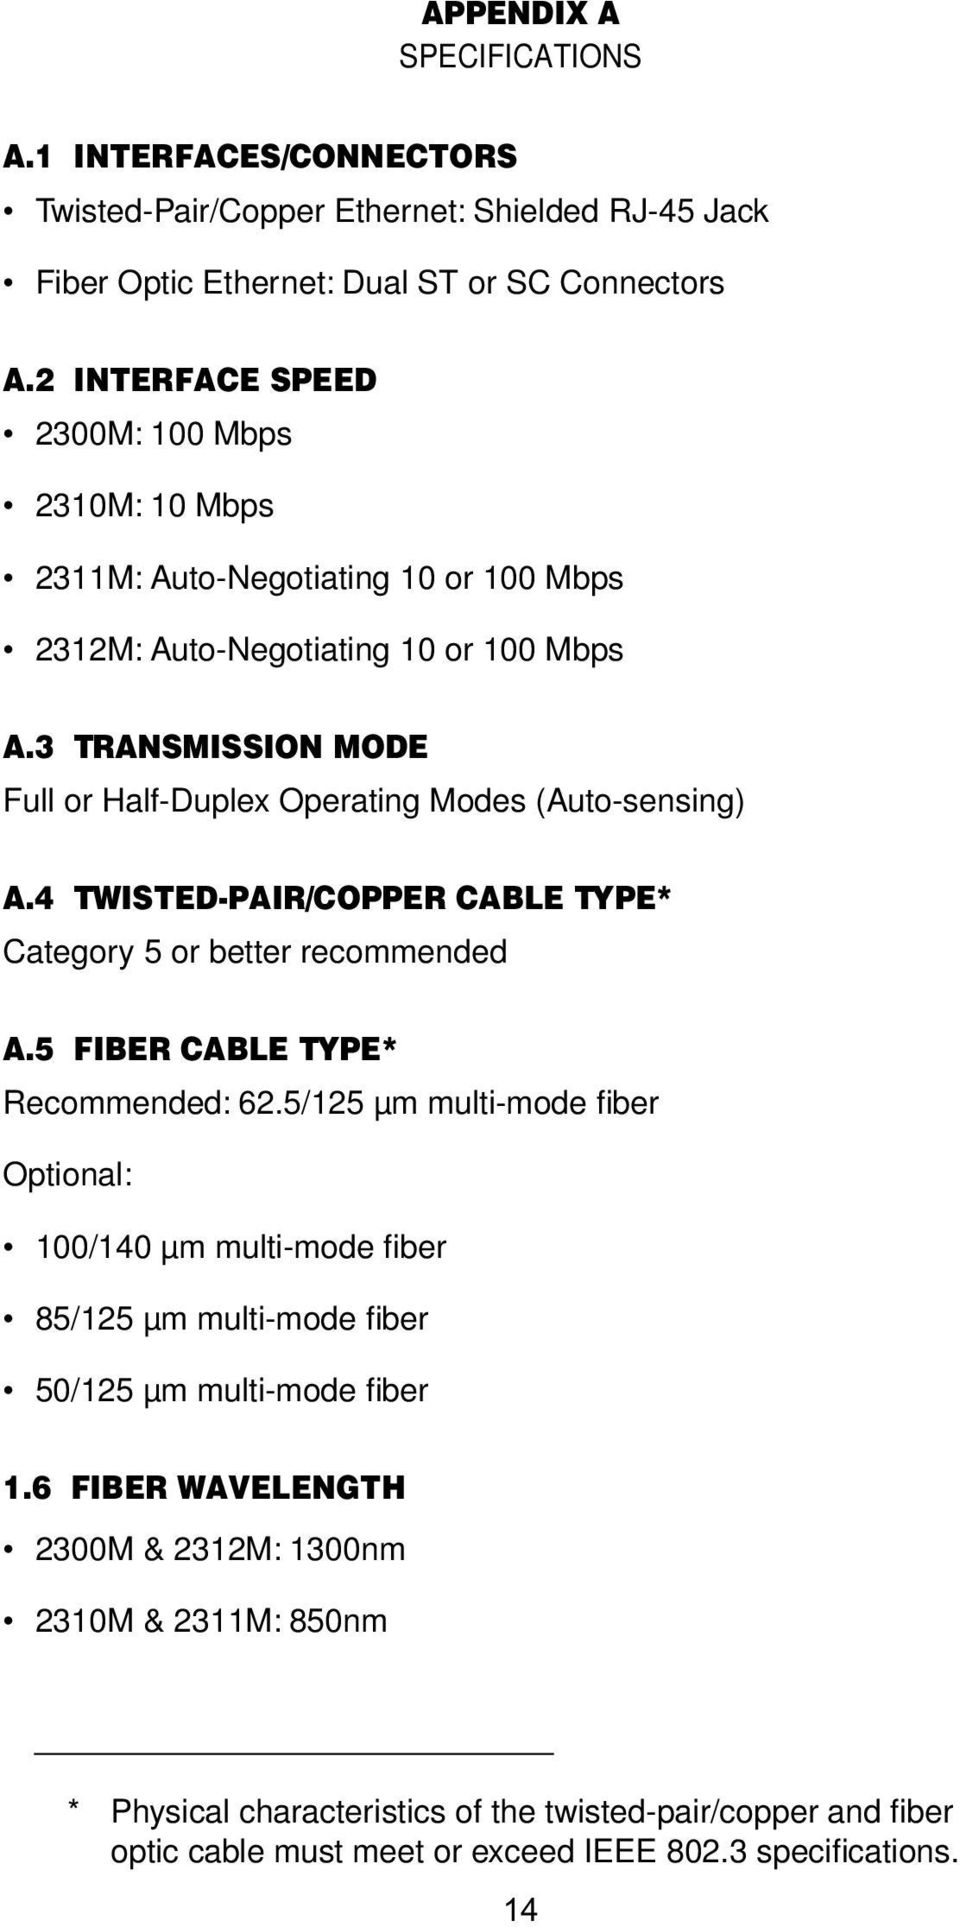 3 TRANSMISSION MODE Full or Half-Duplex Operating Modes (Auto-sensing) A.4 TWISTED-PAIR/COPPER CABLE TYPE* Category 5 or better recommended A.5 FIBER CABLE TYPE* Recommended: 62.